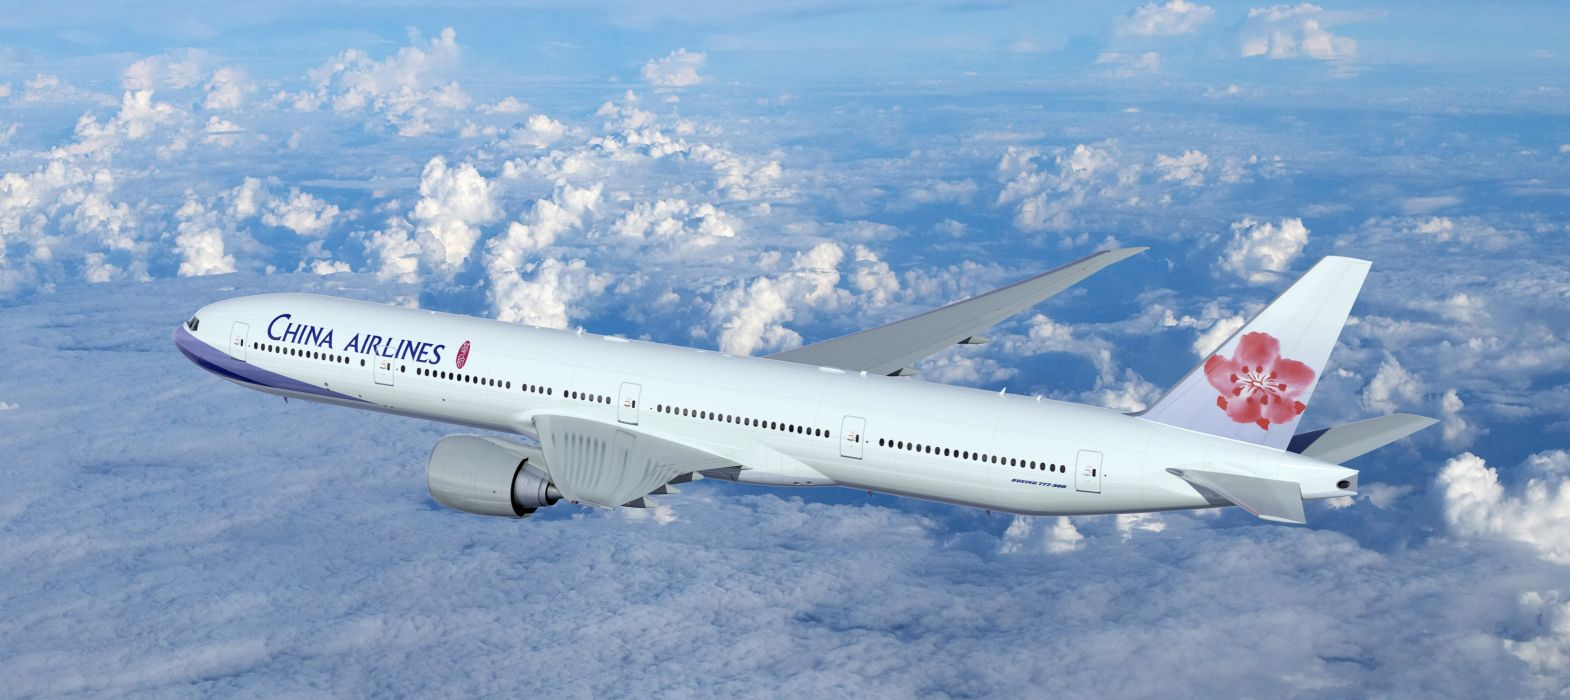 BOEING 777 airliner aircraft airplane plane jet (12) wallpaper